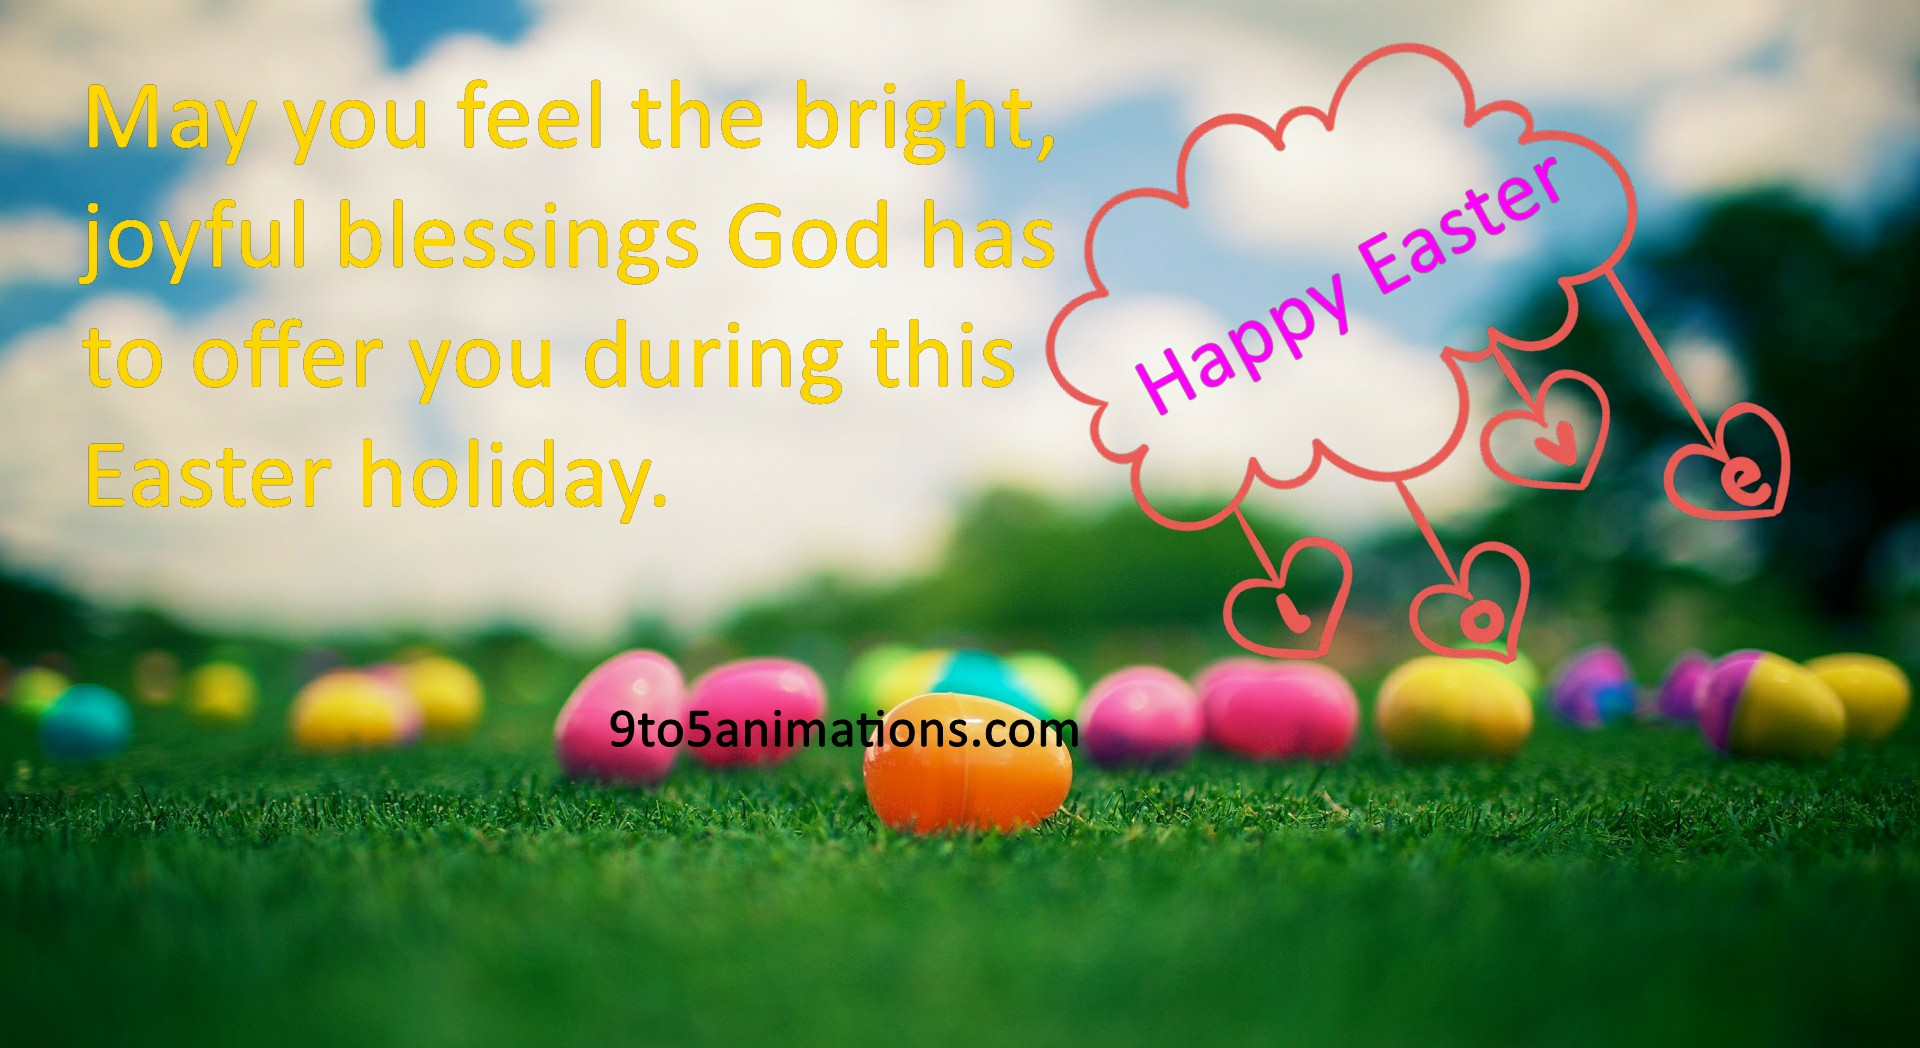 2018 Happy Easter Wishes Images 9To5AnimationsCom 1920x1048